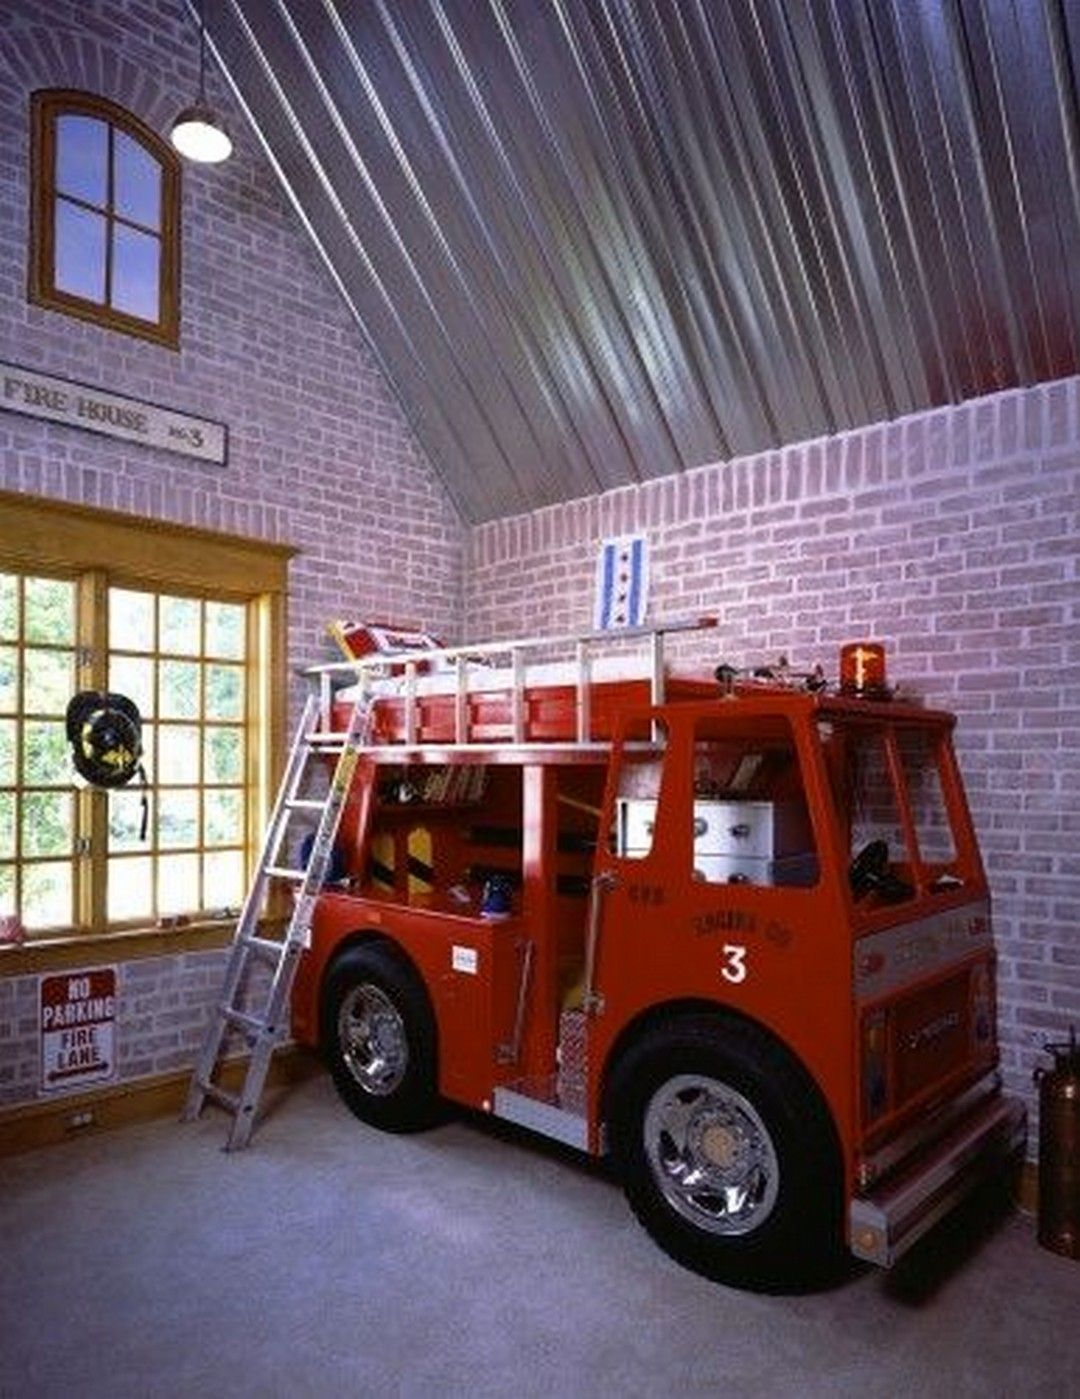 Decorating Kids Bedroom With Fire Truck Theme Hear So Great One Of The Real Heroes In The Real Life Is The Firefigh Fire Truck Bedroom Truck Bedroom Kids Room